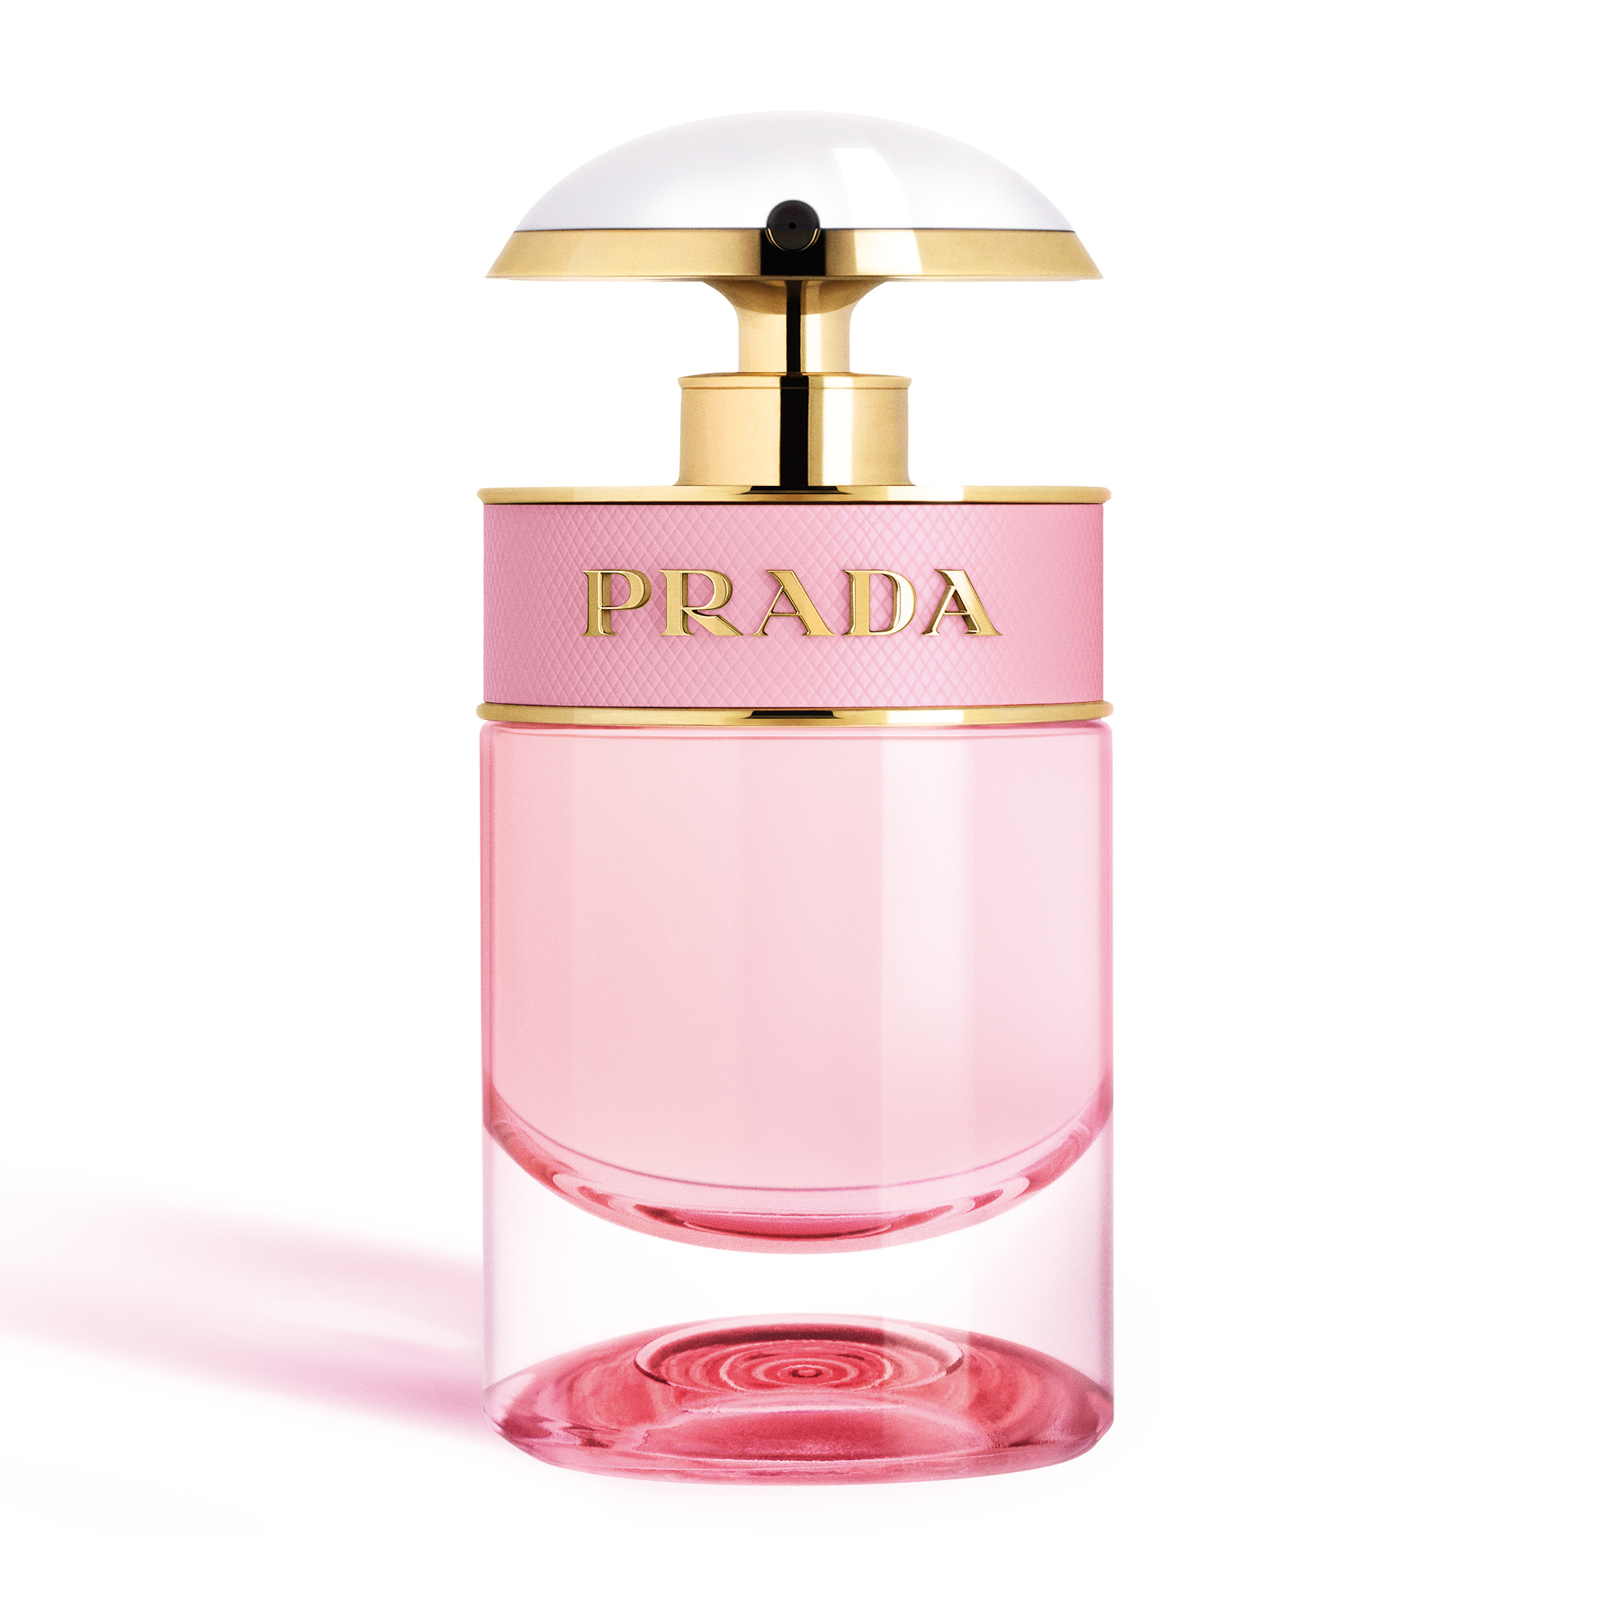 Prada Candy Florale - Eau de Toilette For Women 80 ml